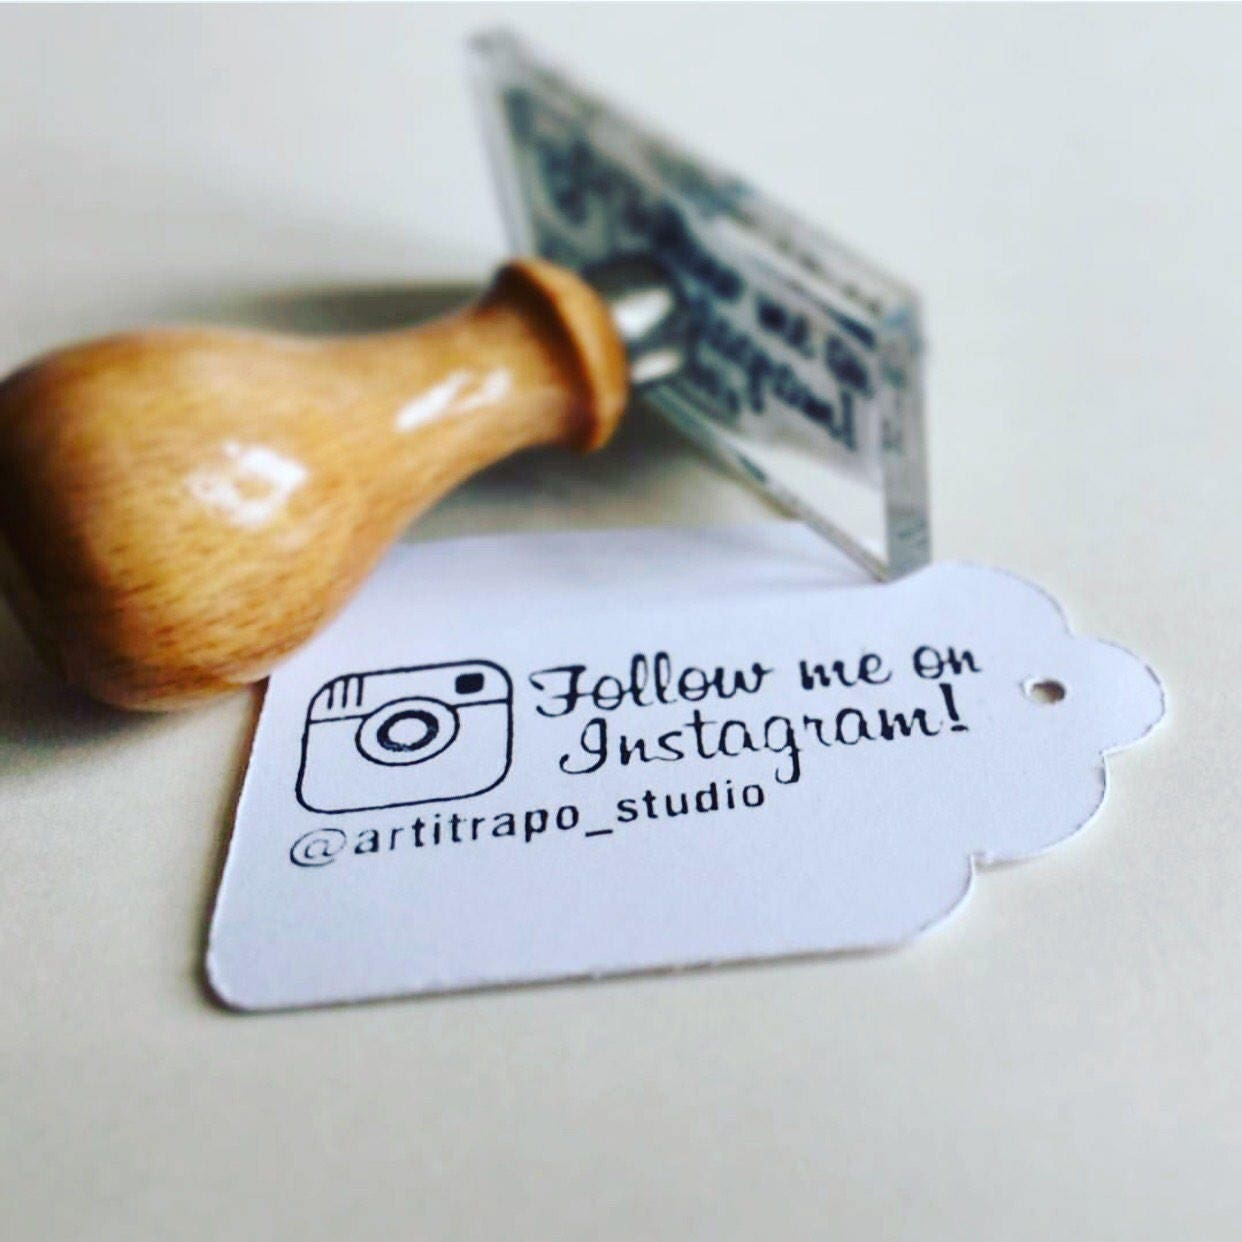 Instagram stamp personalised social media follow me on instagram gallery photo gallery photo gallery photo gallery photo gallery photo colourmoves